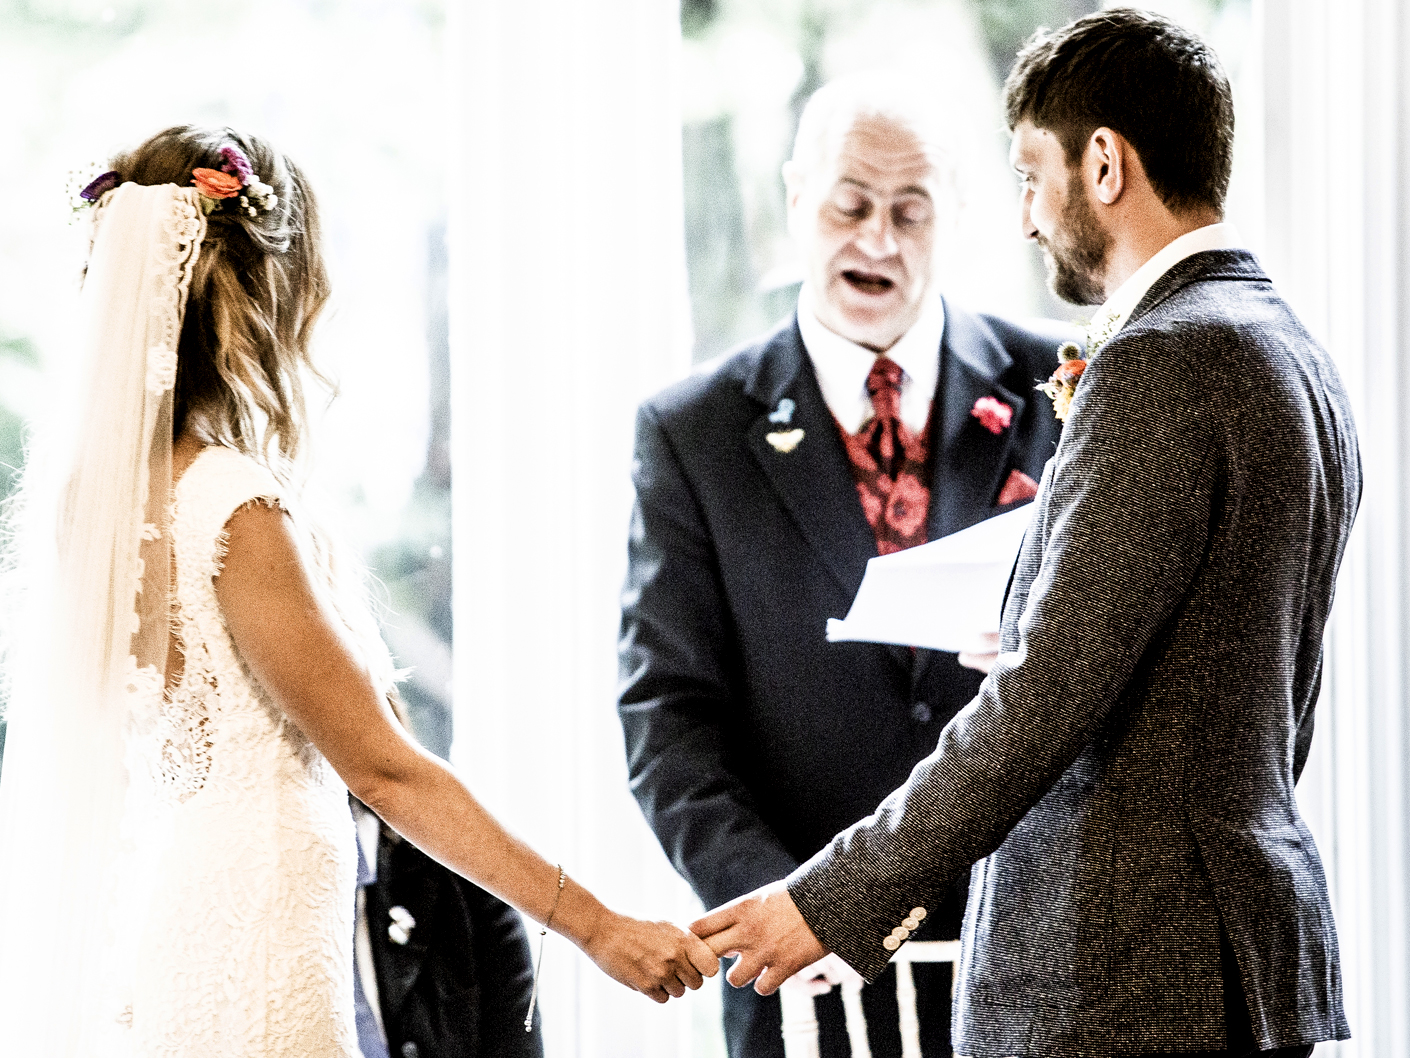 photography-of-the-bride-and-groom-at-the-wedding-ceremony